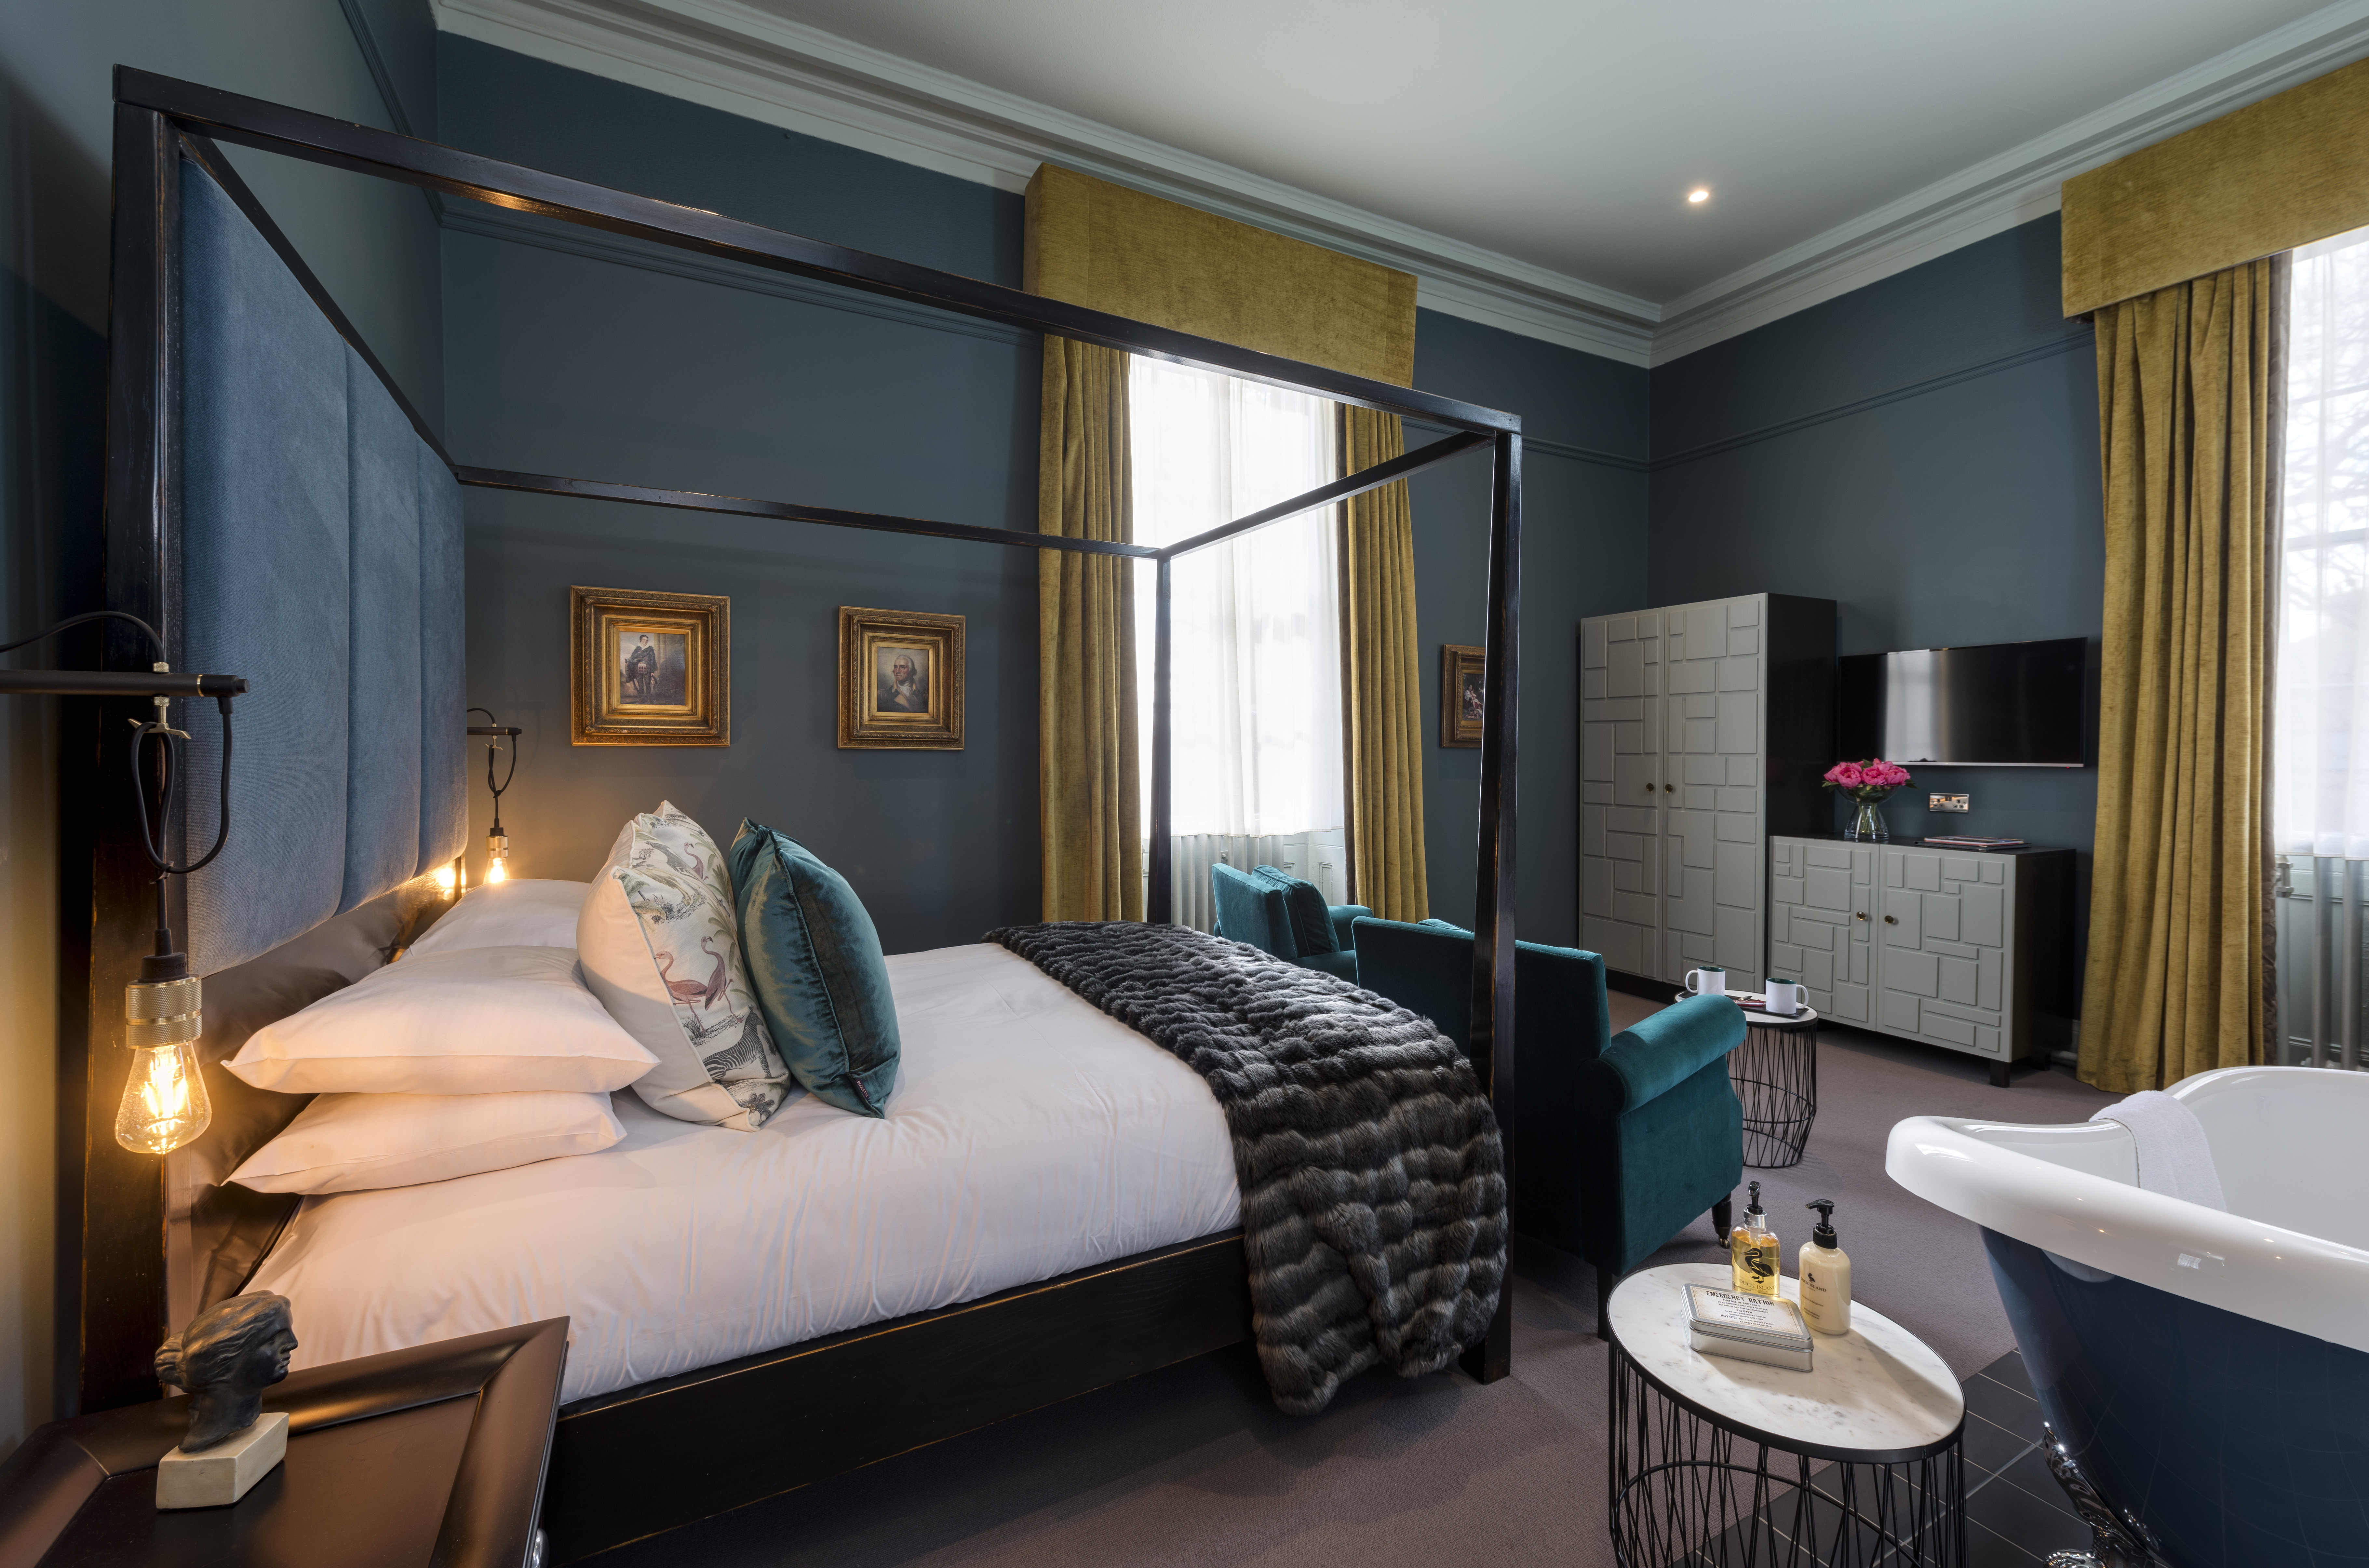 A Luxury Four Poster Bedroom